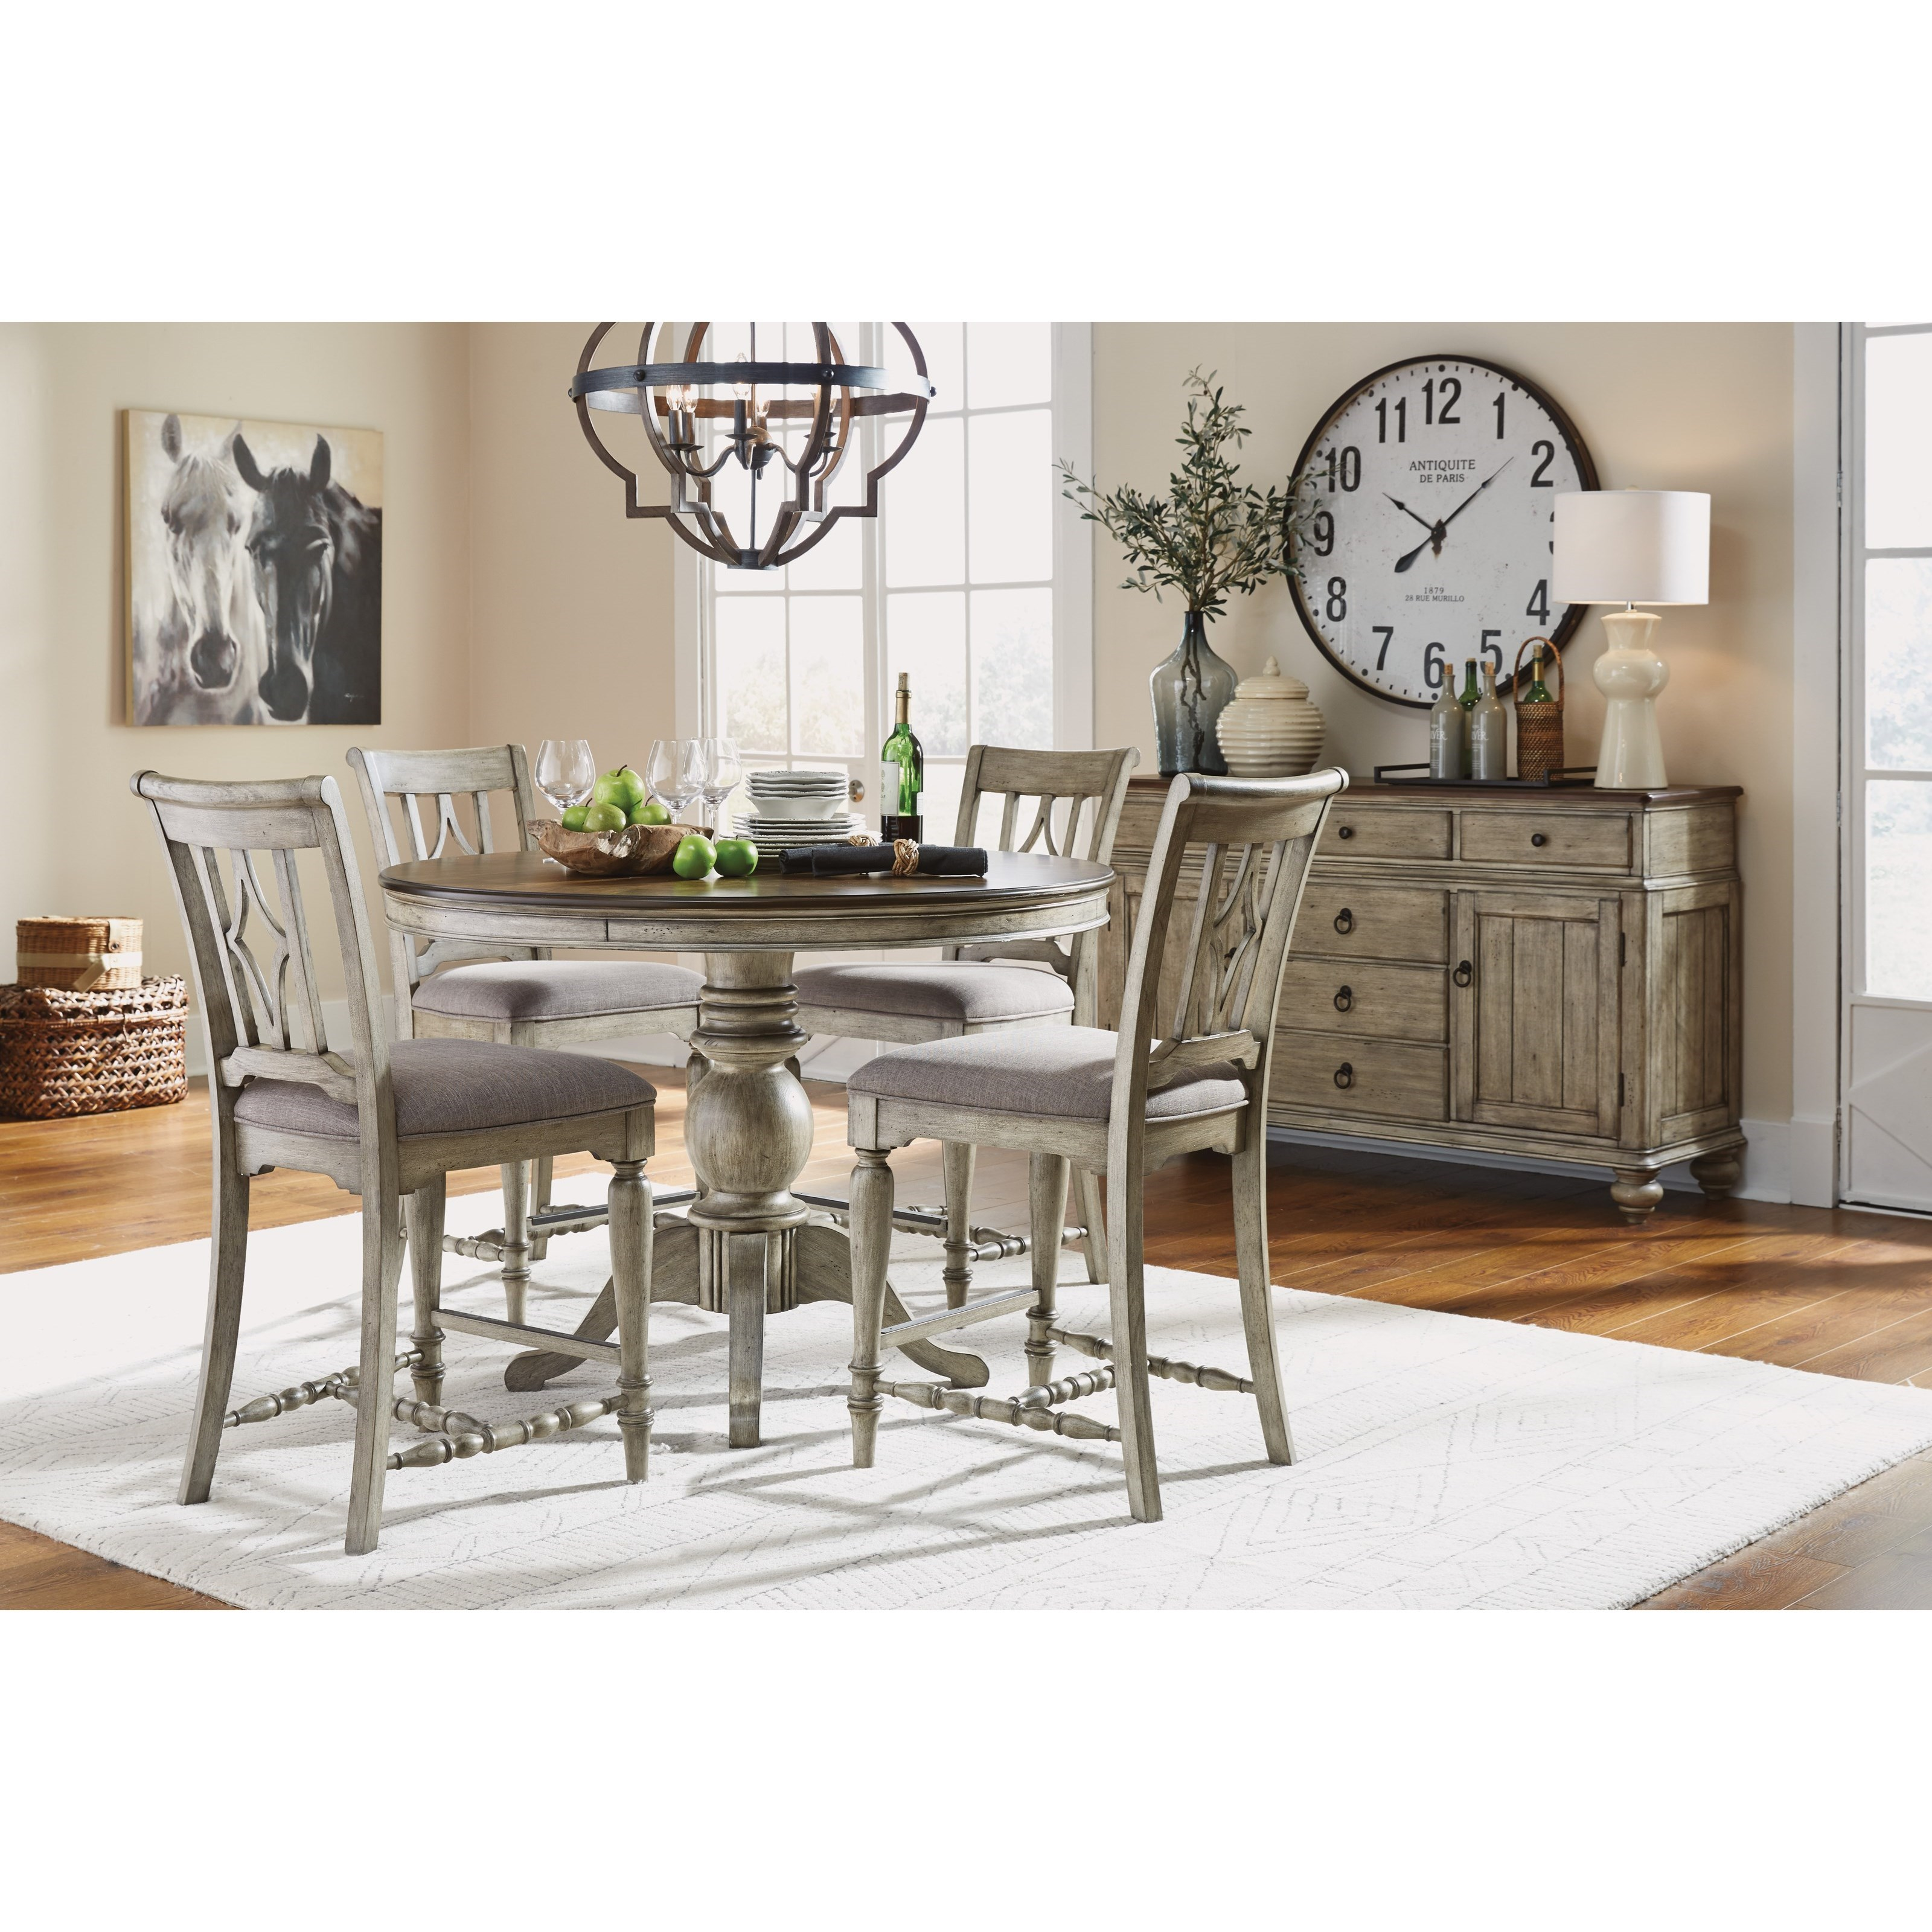 Plymouth Counter Height Dining Room Group by Flexsteel Wynwood Collection at Northeast Factory Direct